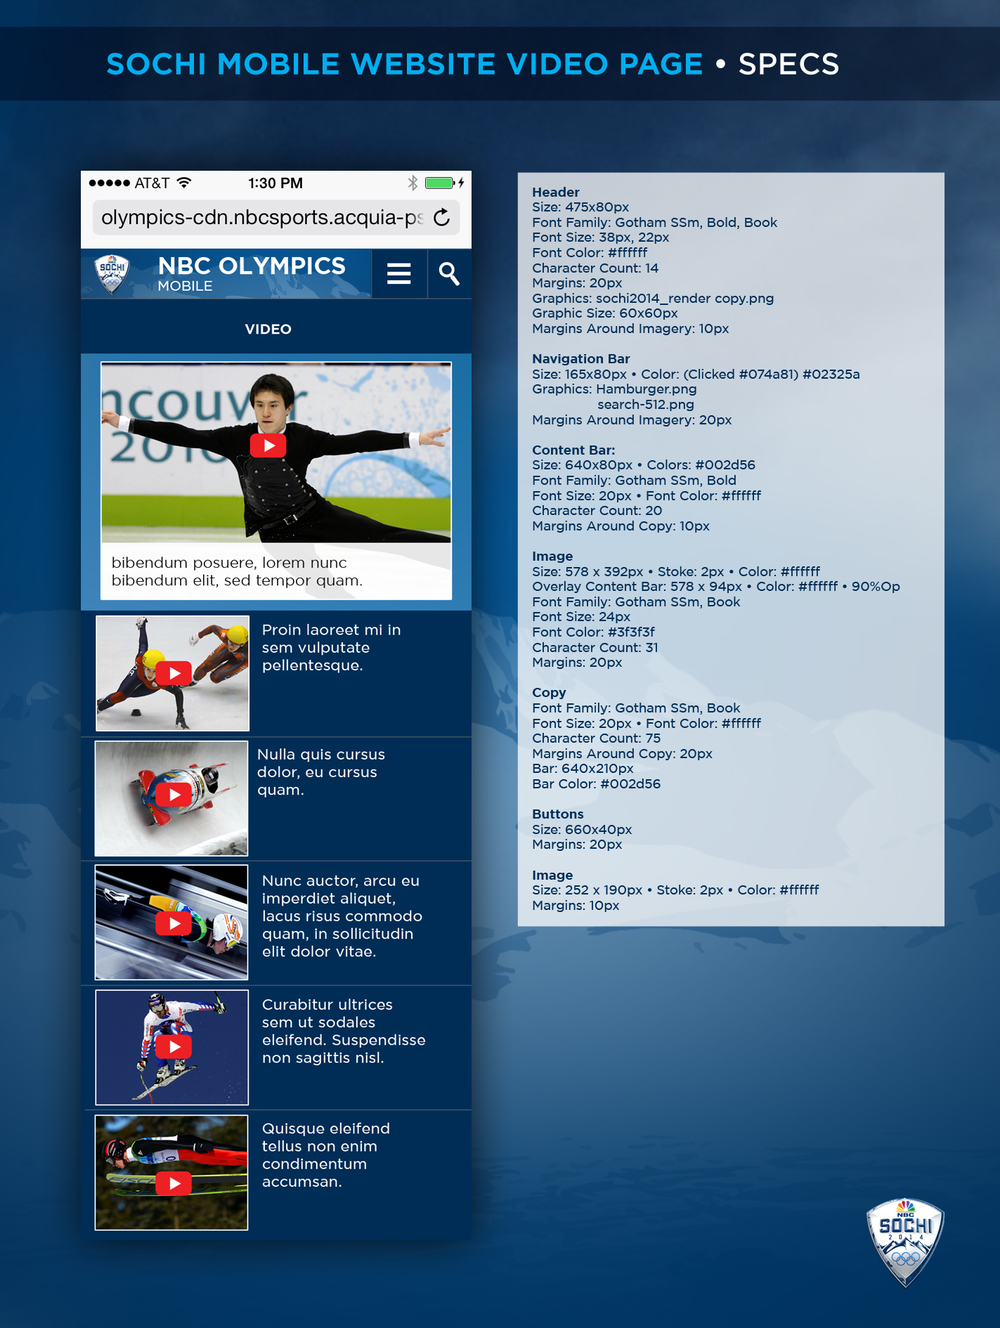 Sochi-Mobile-Website-Style-Guide-Video-Page.jpg